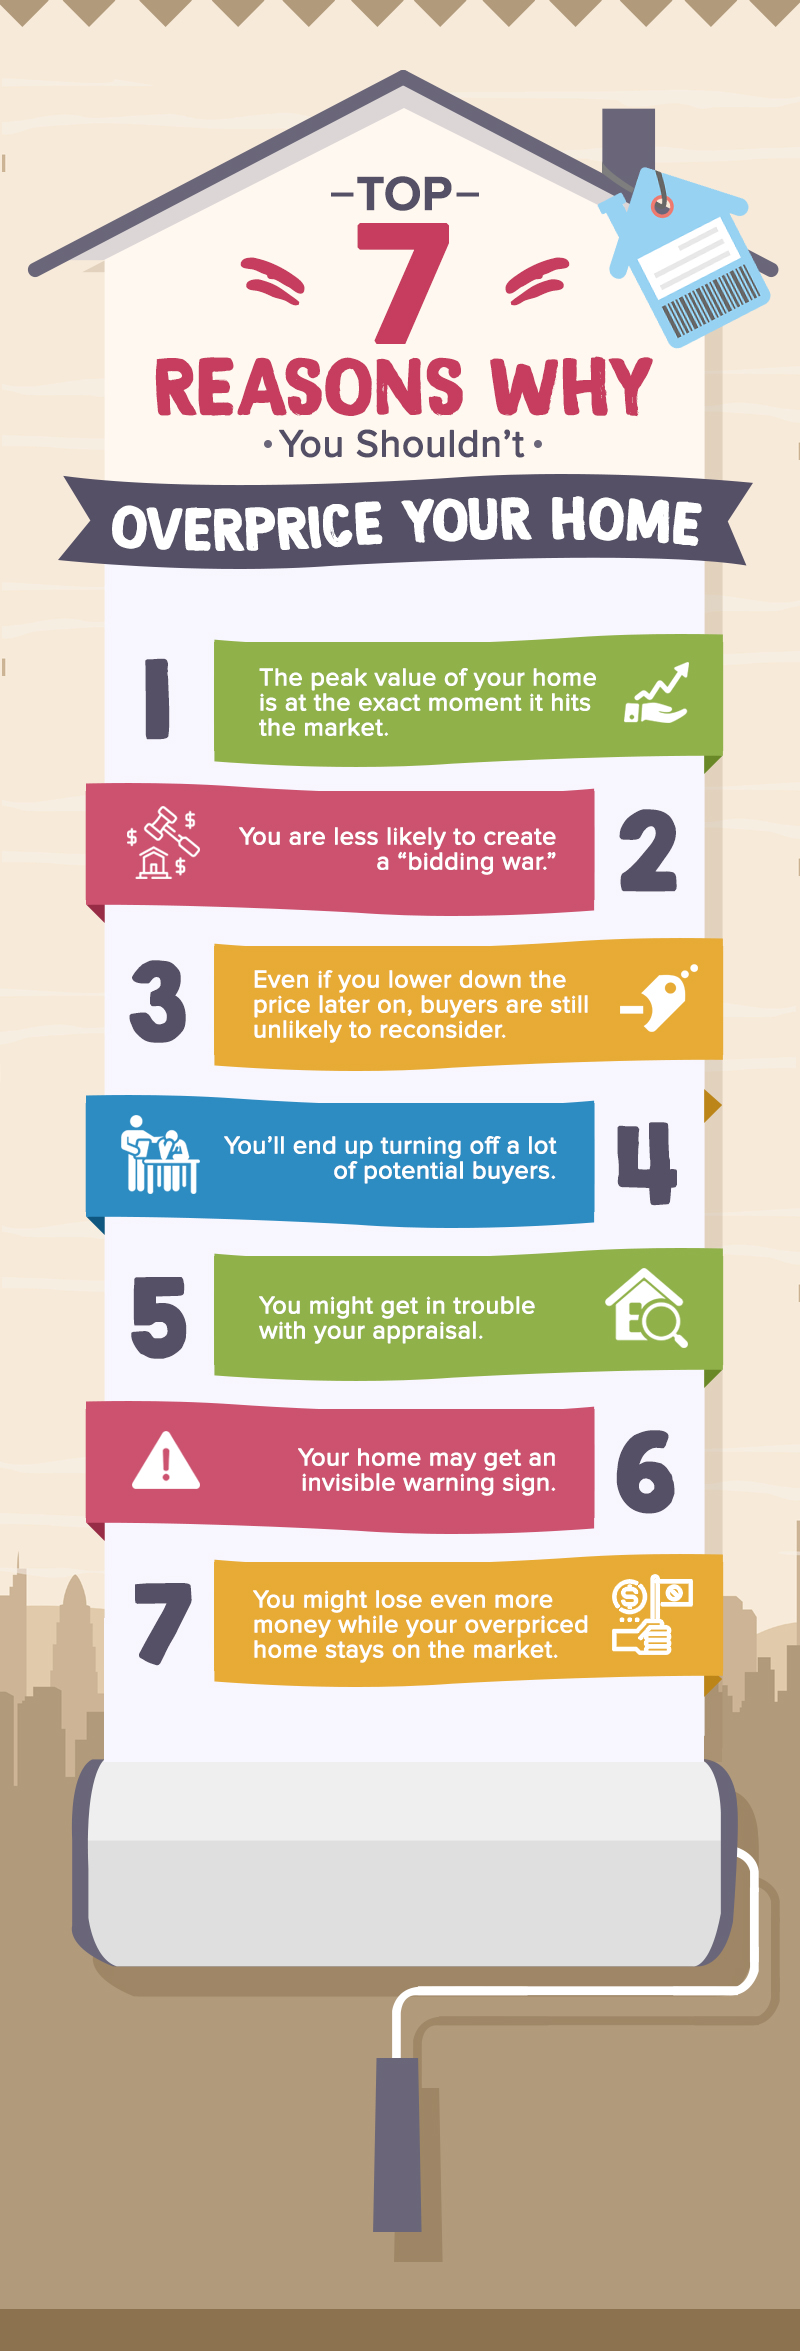 Top Reasons Why You Shouldn't Overprice Your Home.jpg